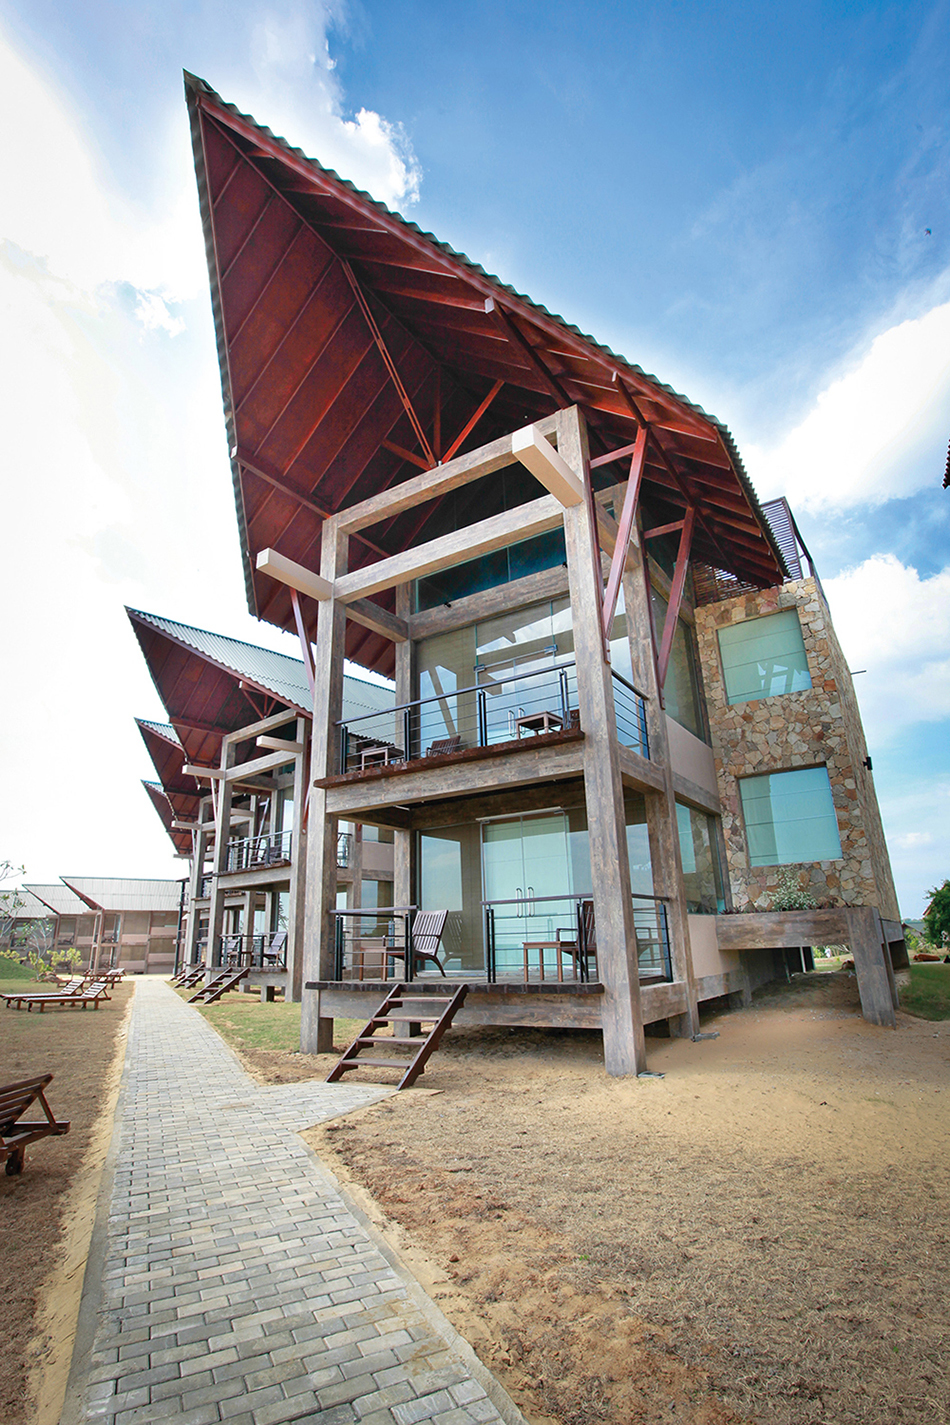 Laya Safari is a hotel in the South